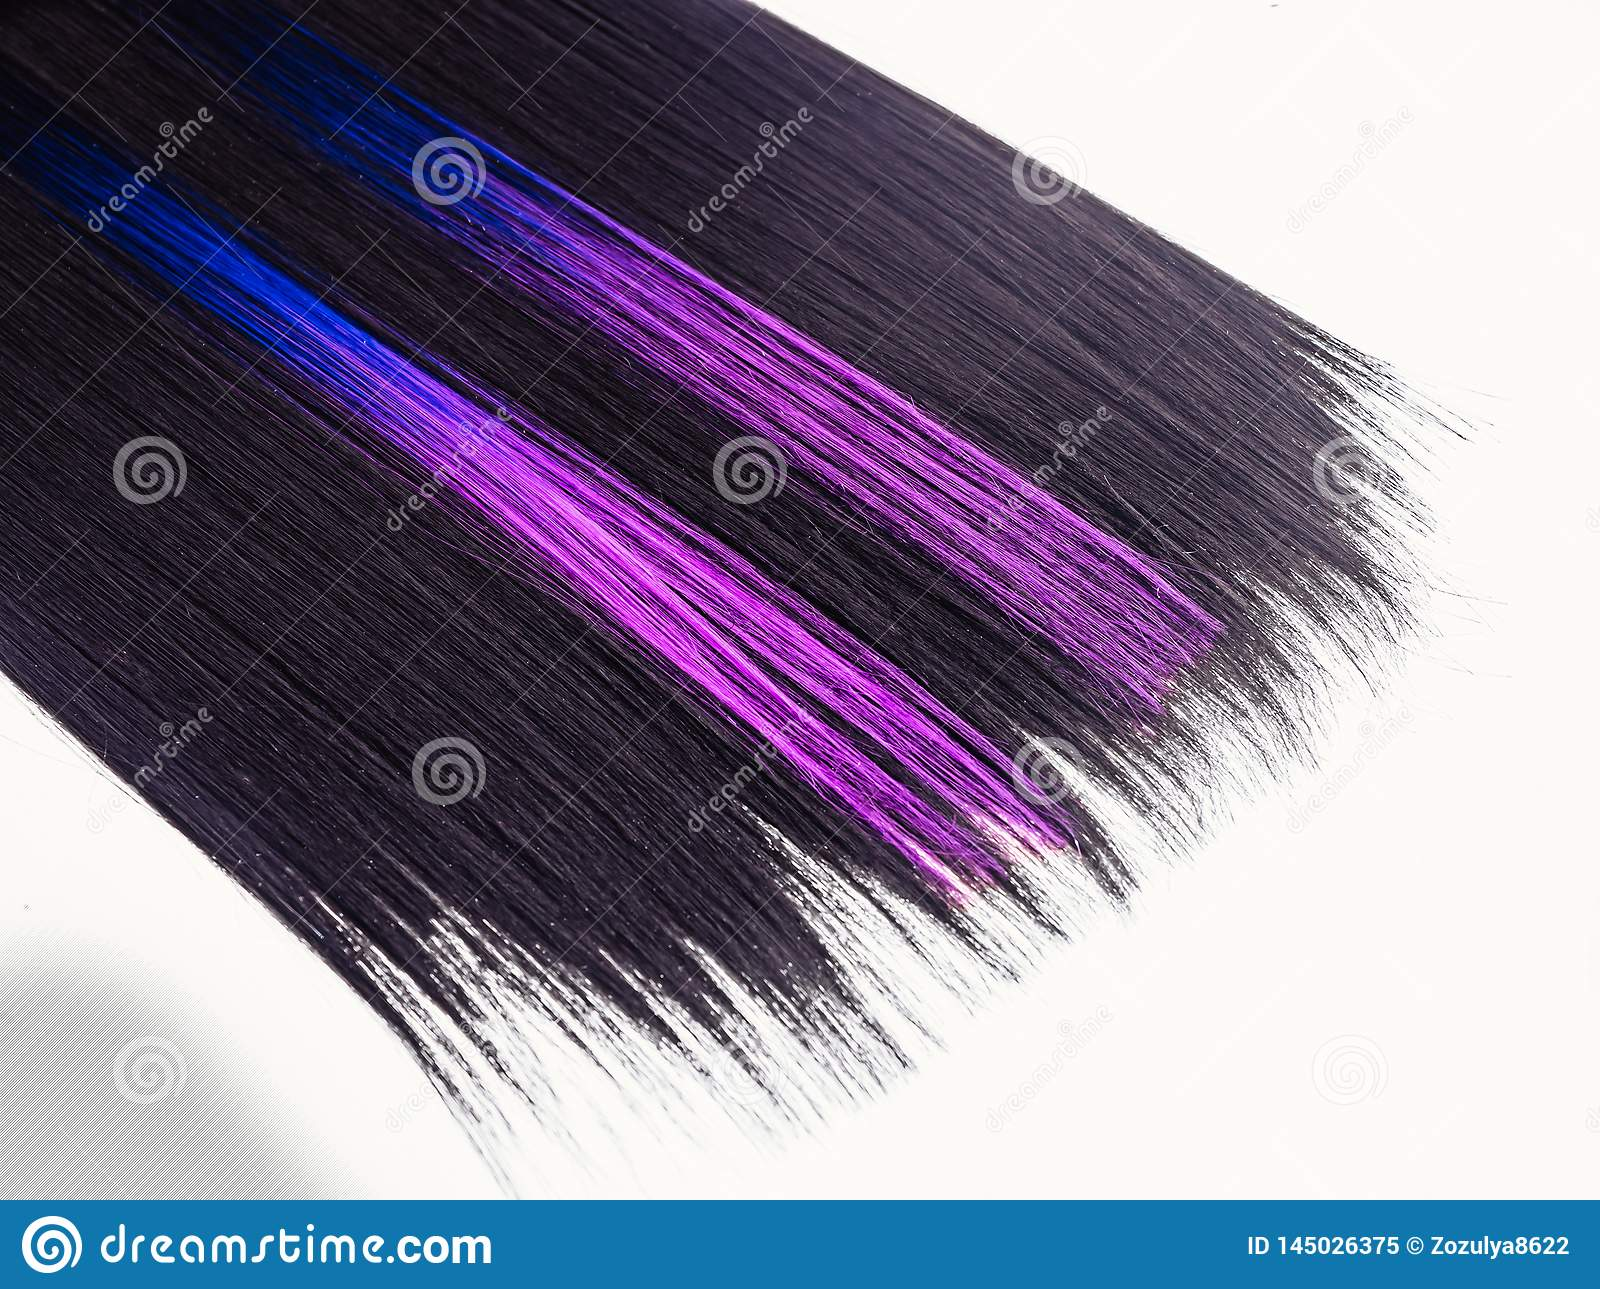 Shiny straight black hair background. Beautiful smooth brunette hair with colored purple lilac blue strands. Beauty